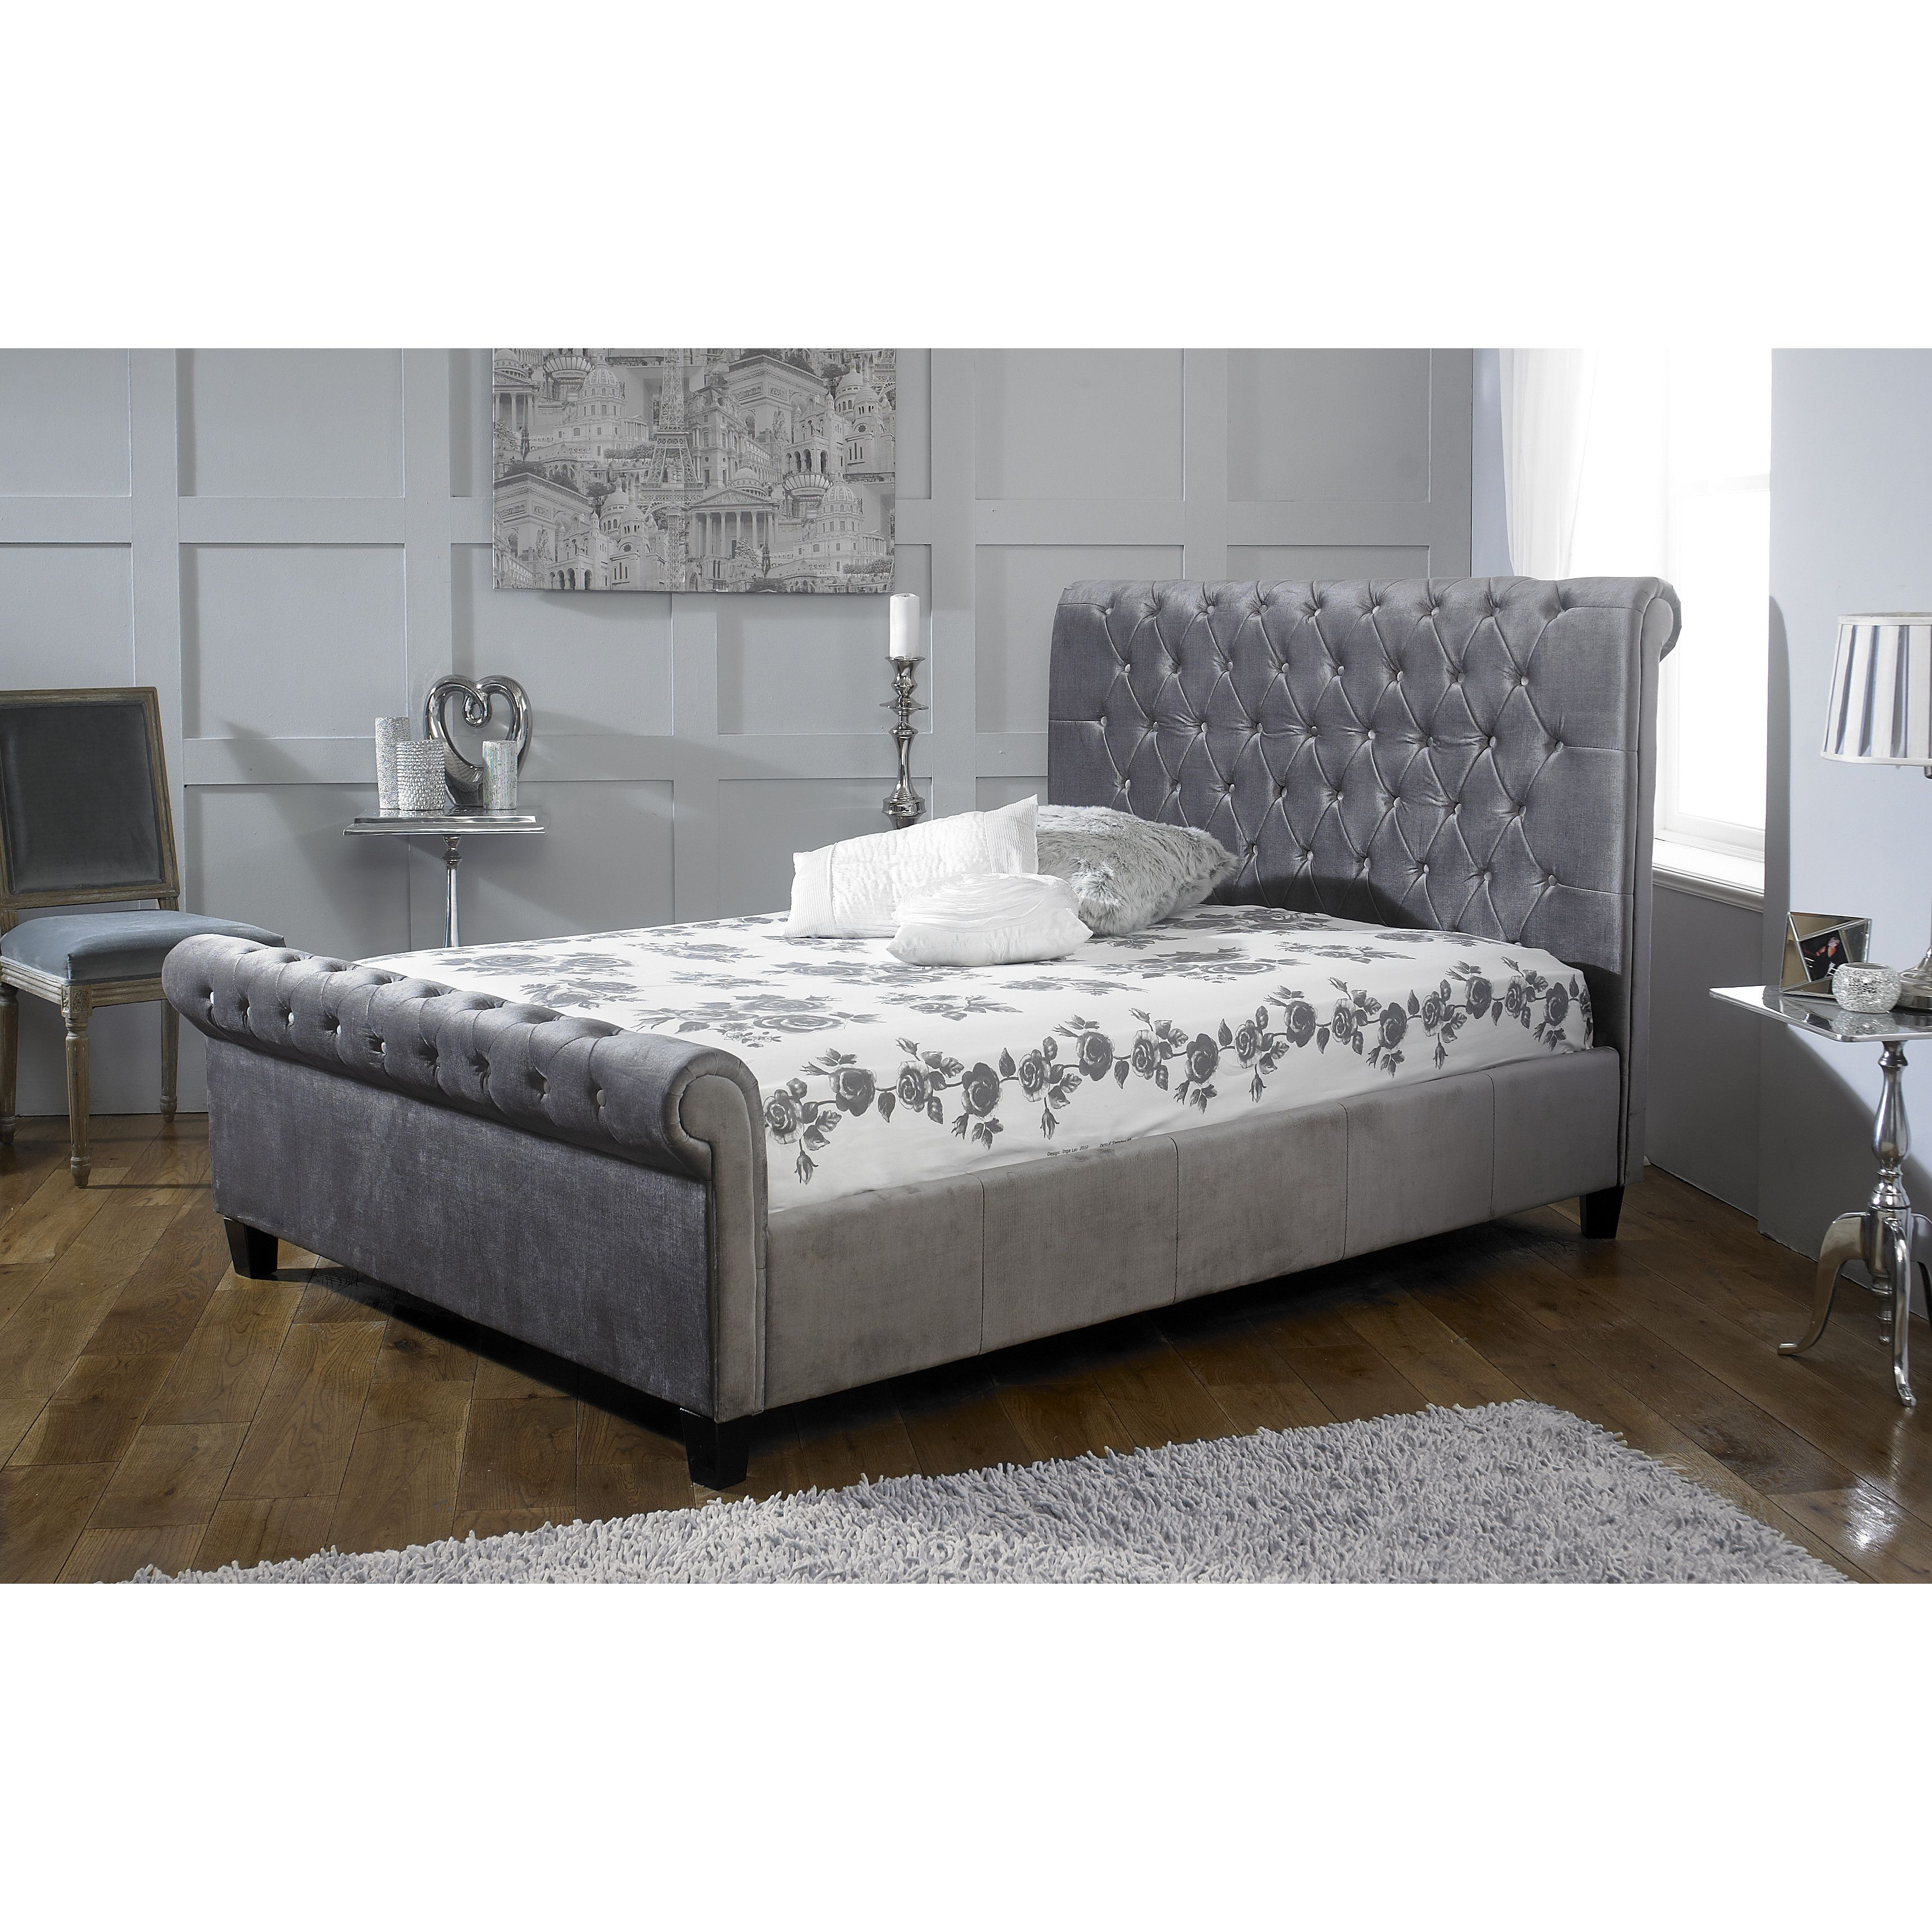 bed glam home refined house sleigh grayson sutton upholstered